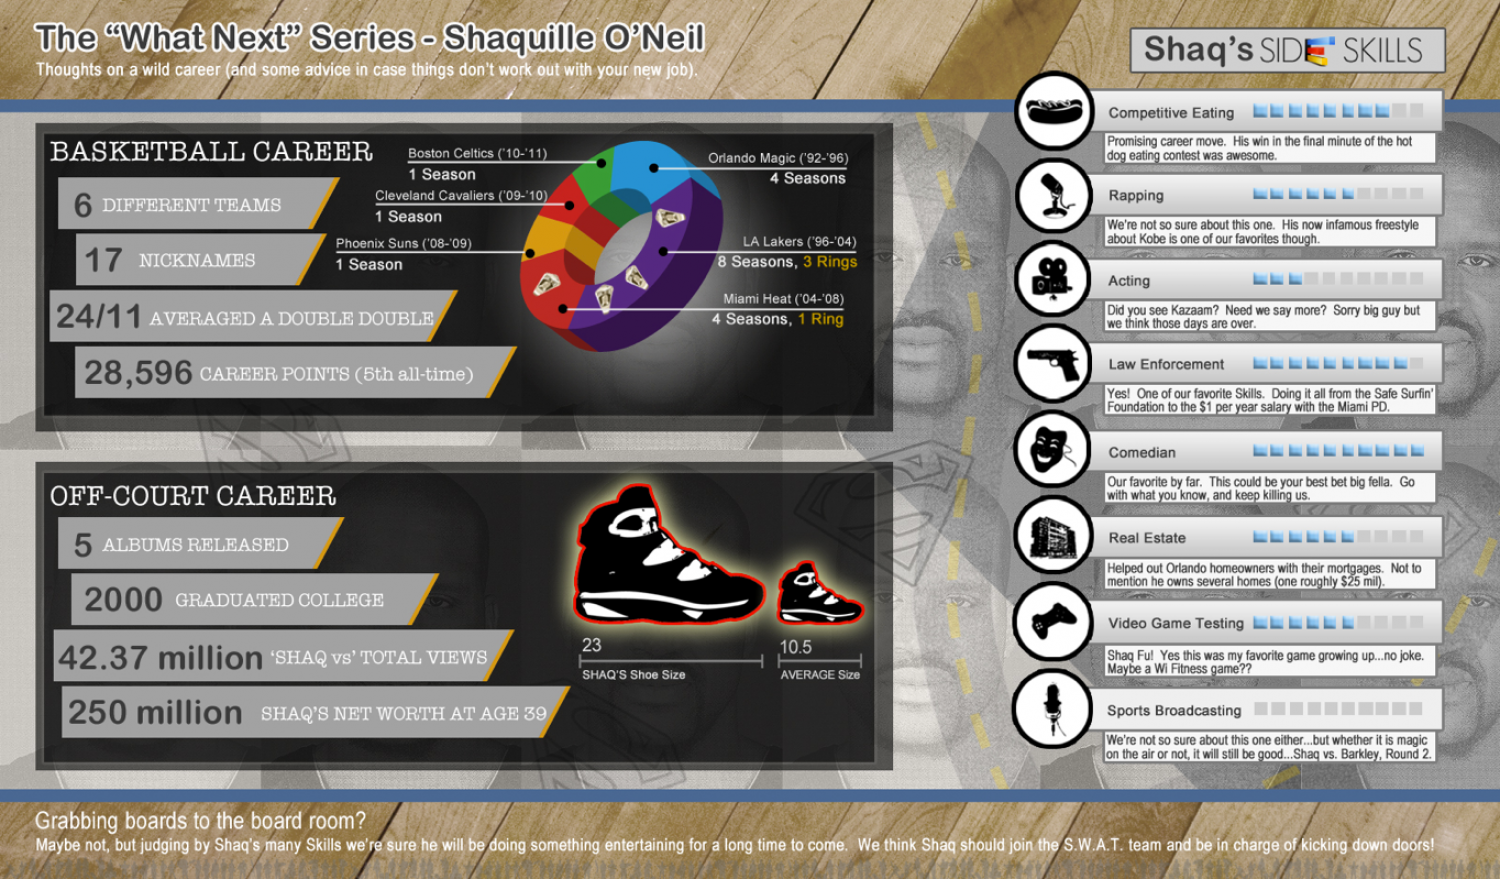 What's Next for Shaq? Infographic